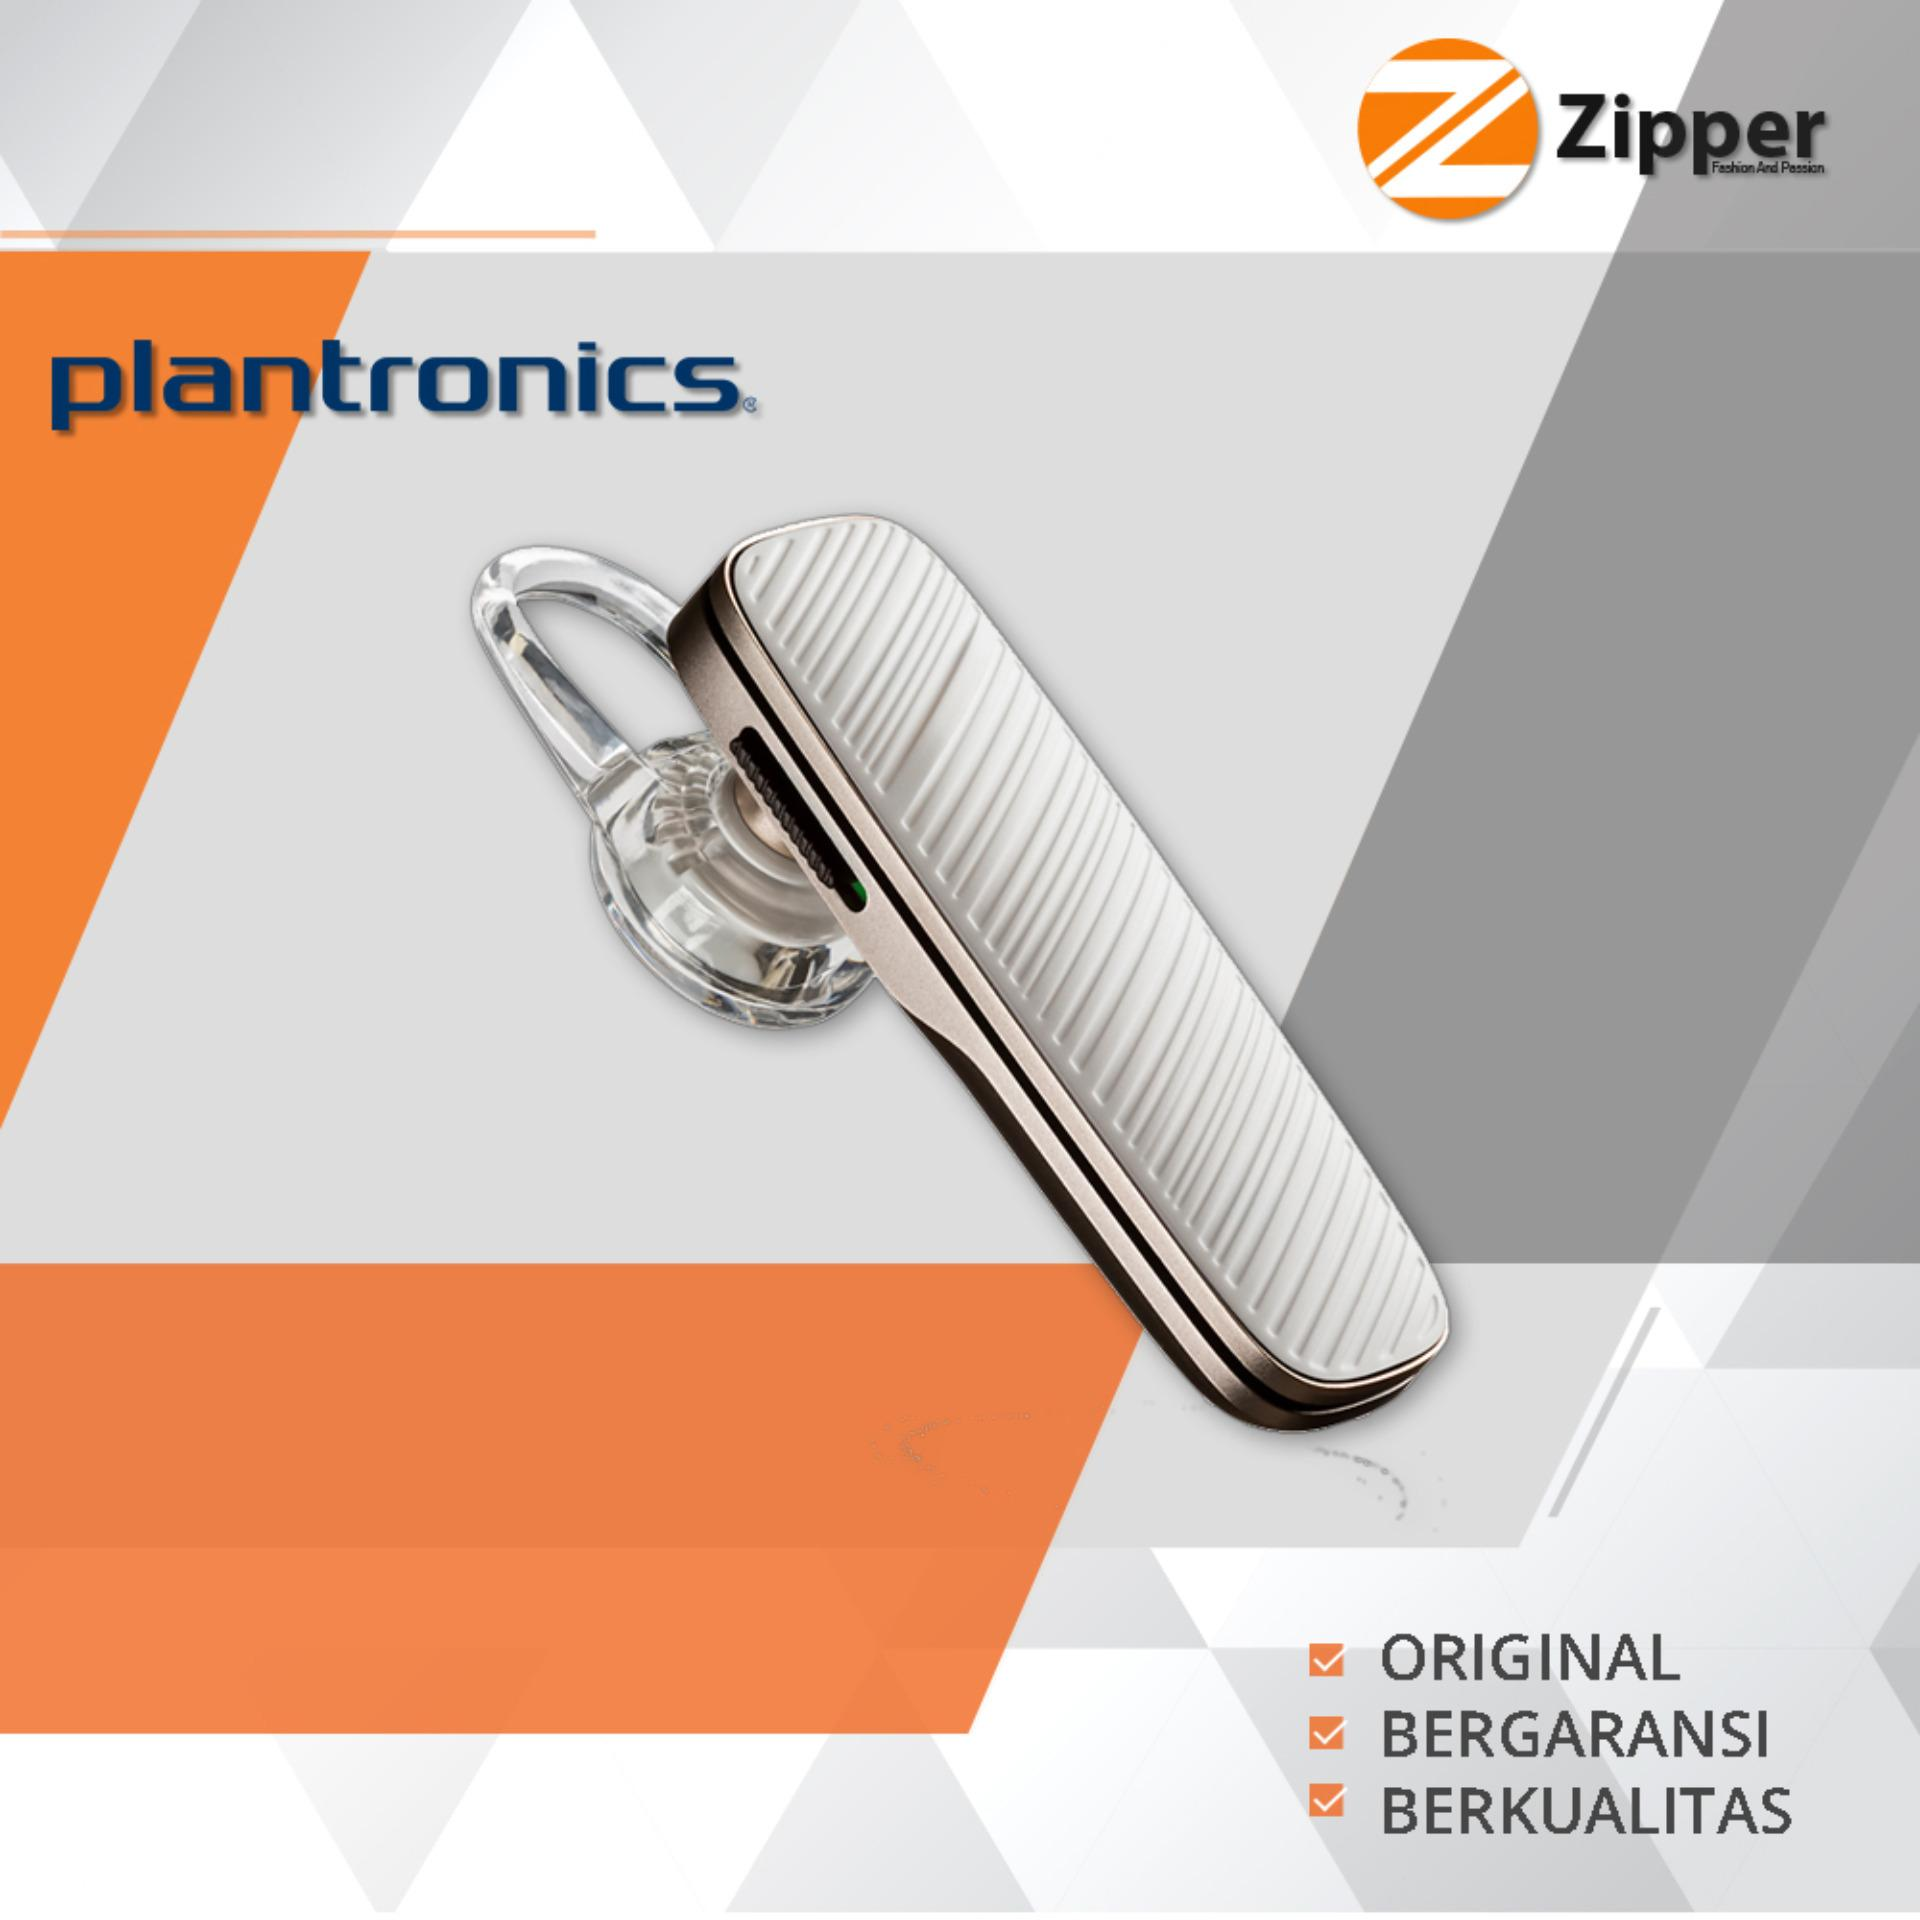 Harga Plantronics Explorer 500 Mobile Bluetooth Headset Terbaik